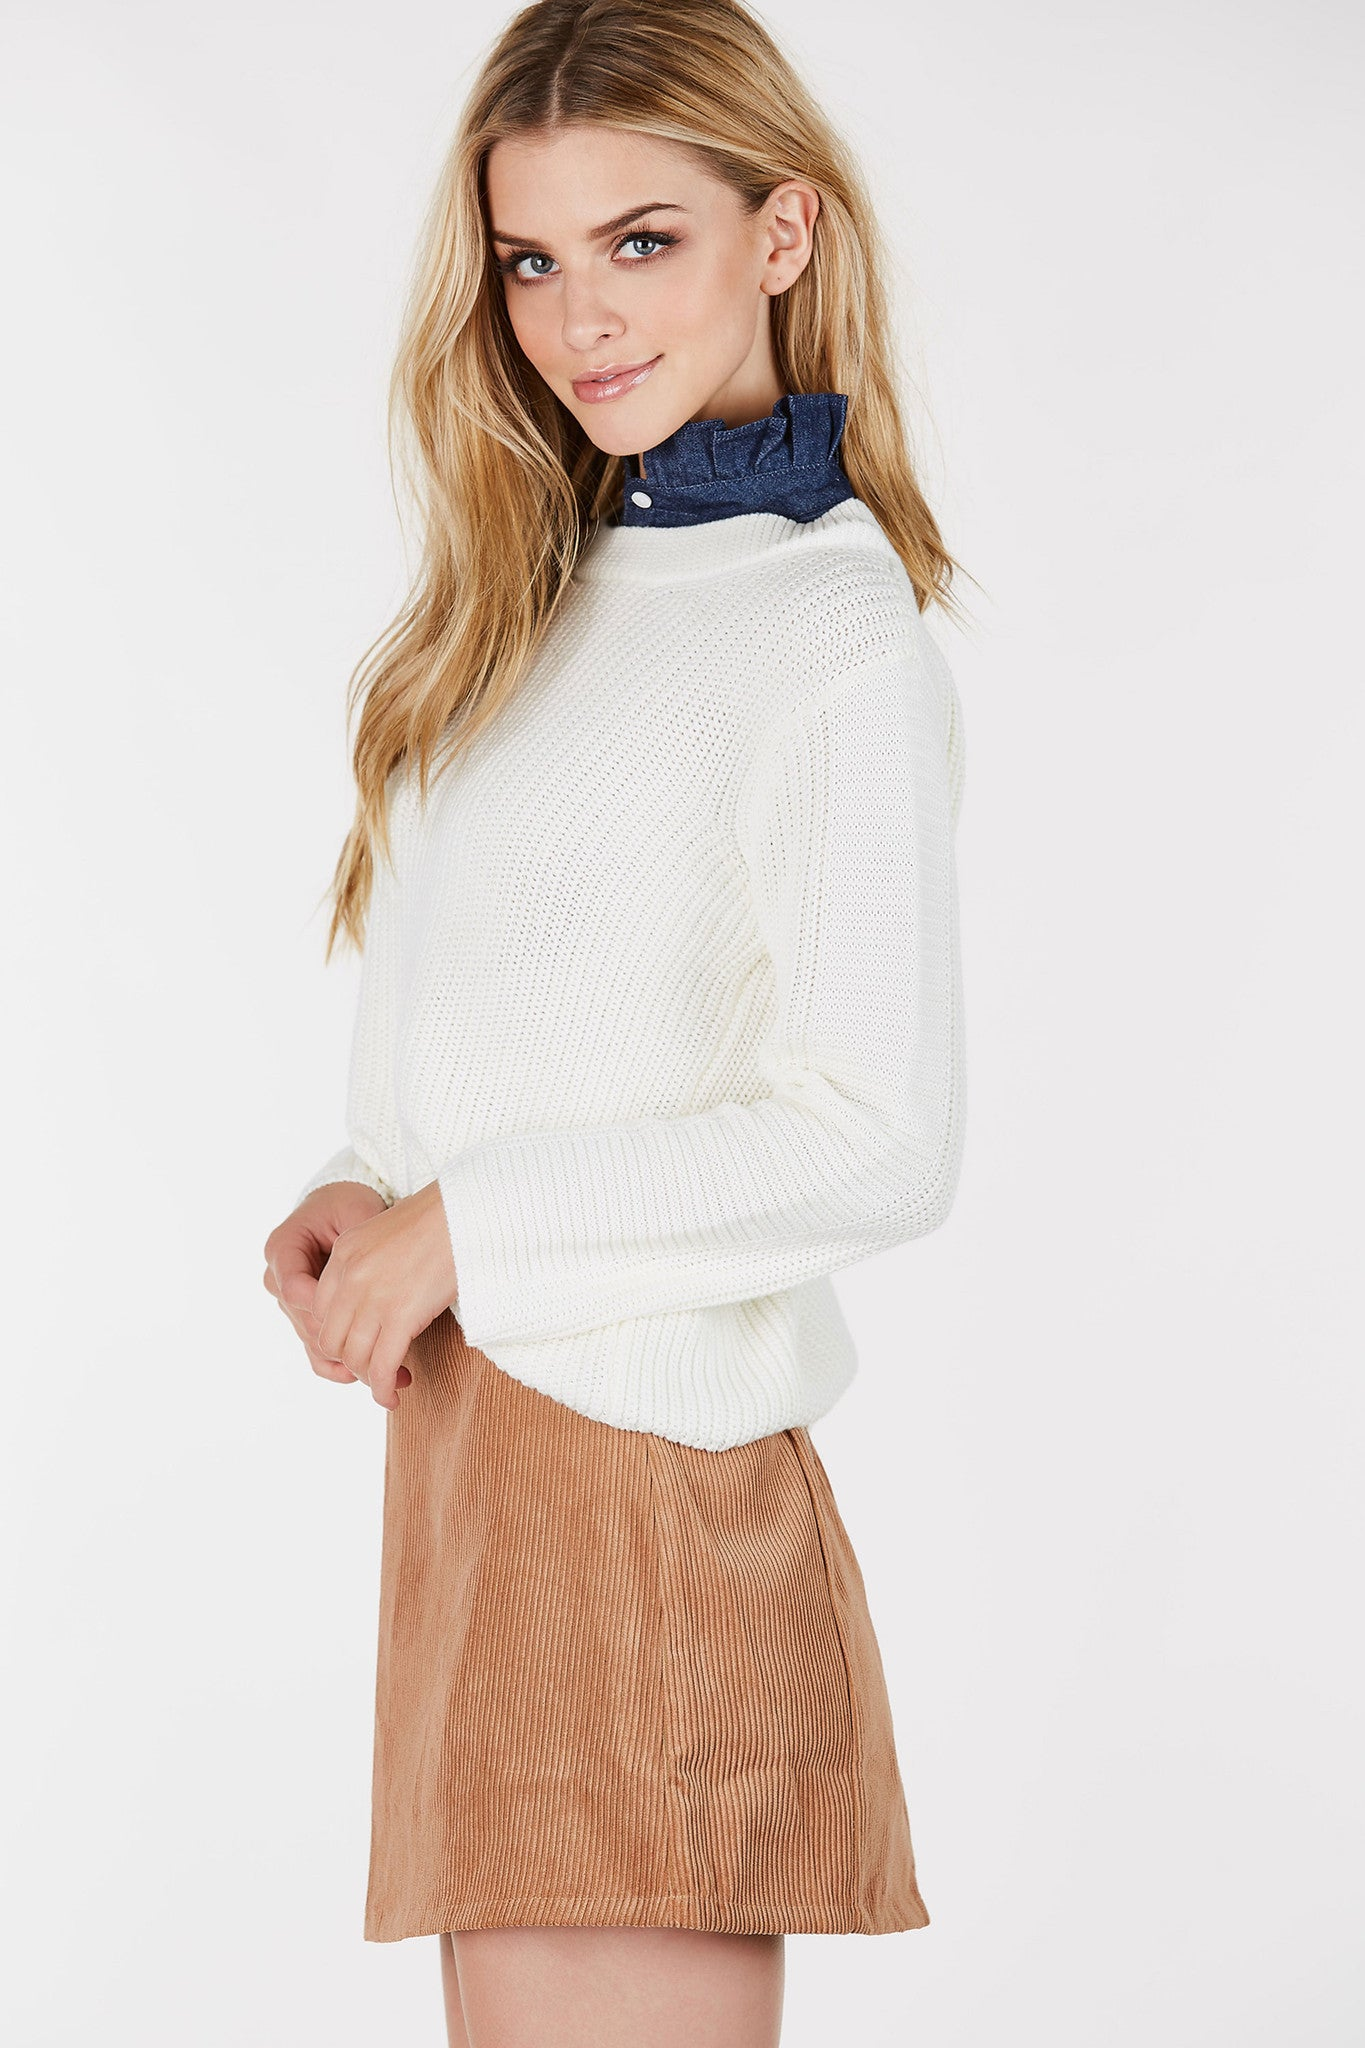 Mock neck top with sweater knit body. Contrast neckline with ruffle detailing.